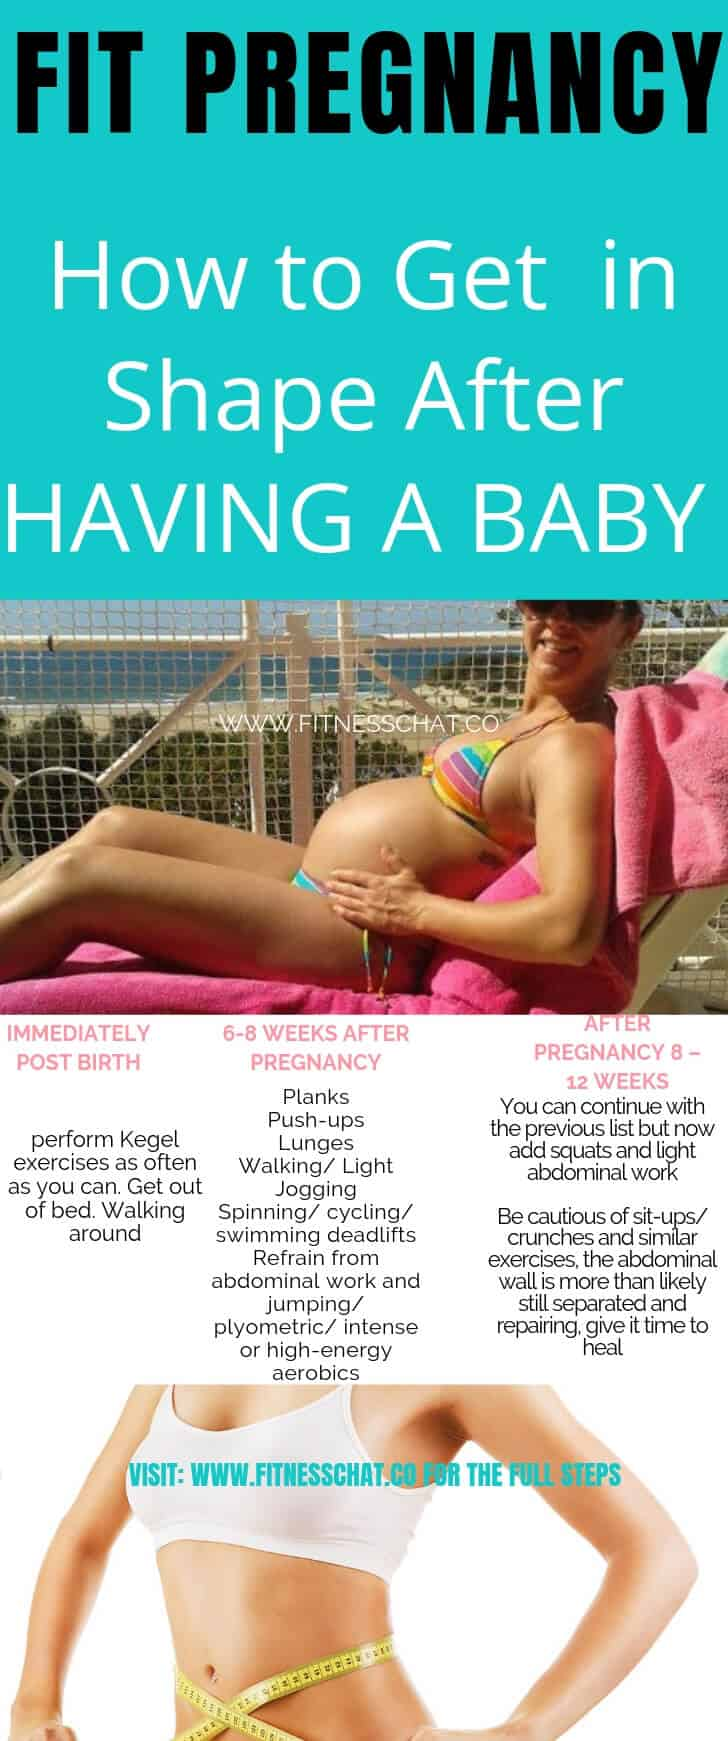 Fit pregnancy. How to Get in Shape After HAVING A BABY.pregnancy workout plan